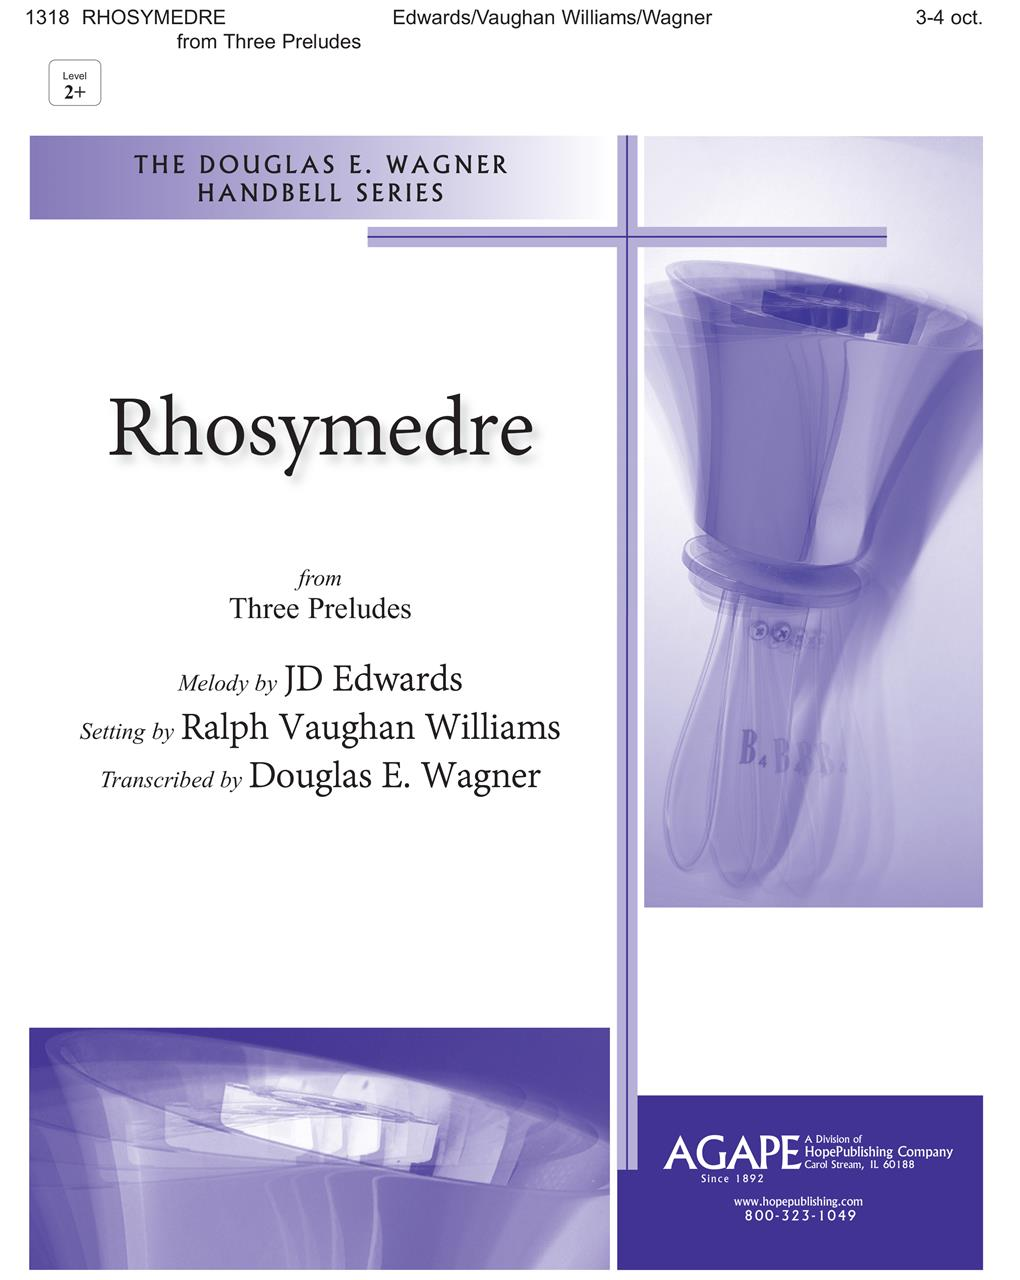 Rhosymedre - 3-4 Octave Cover Image